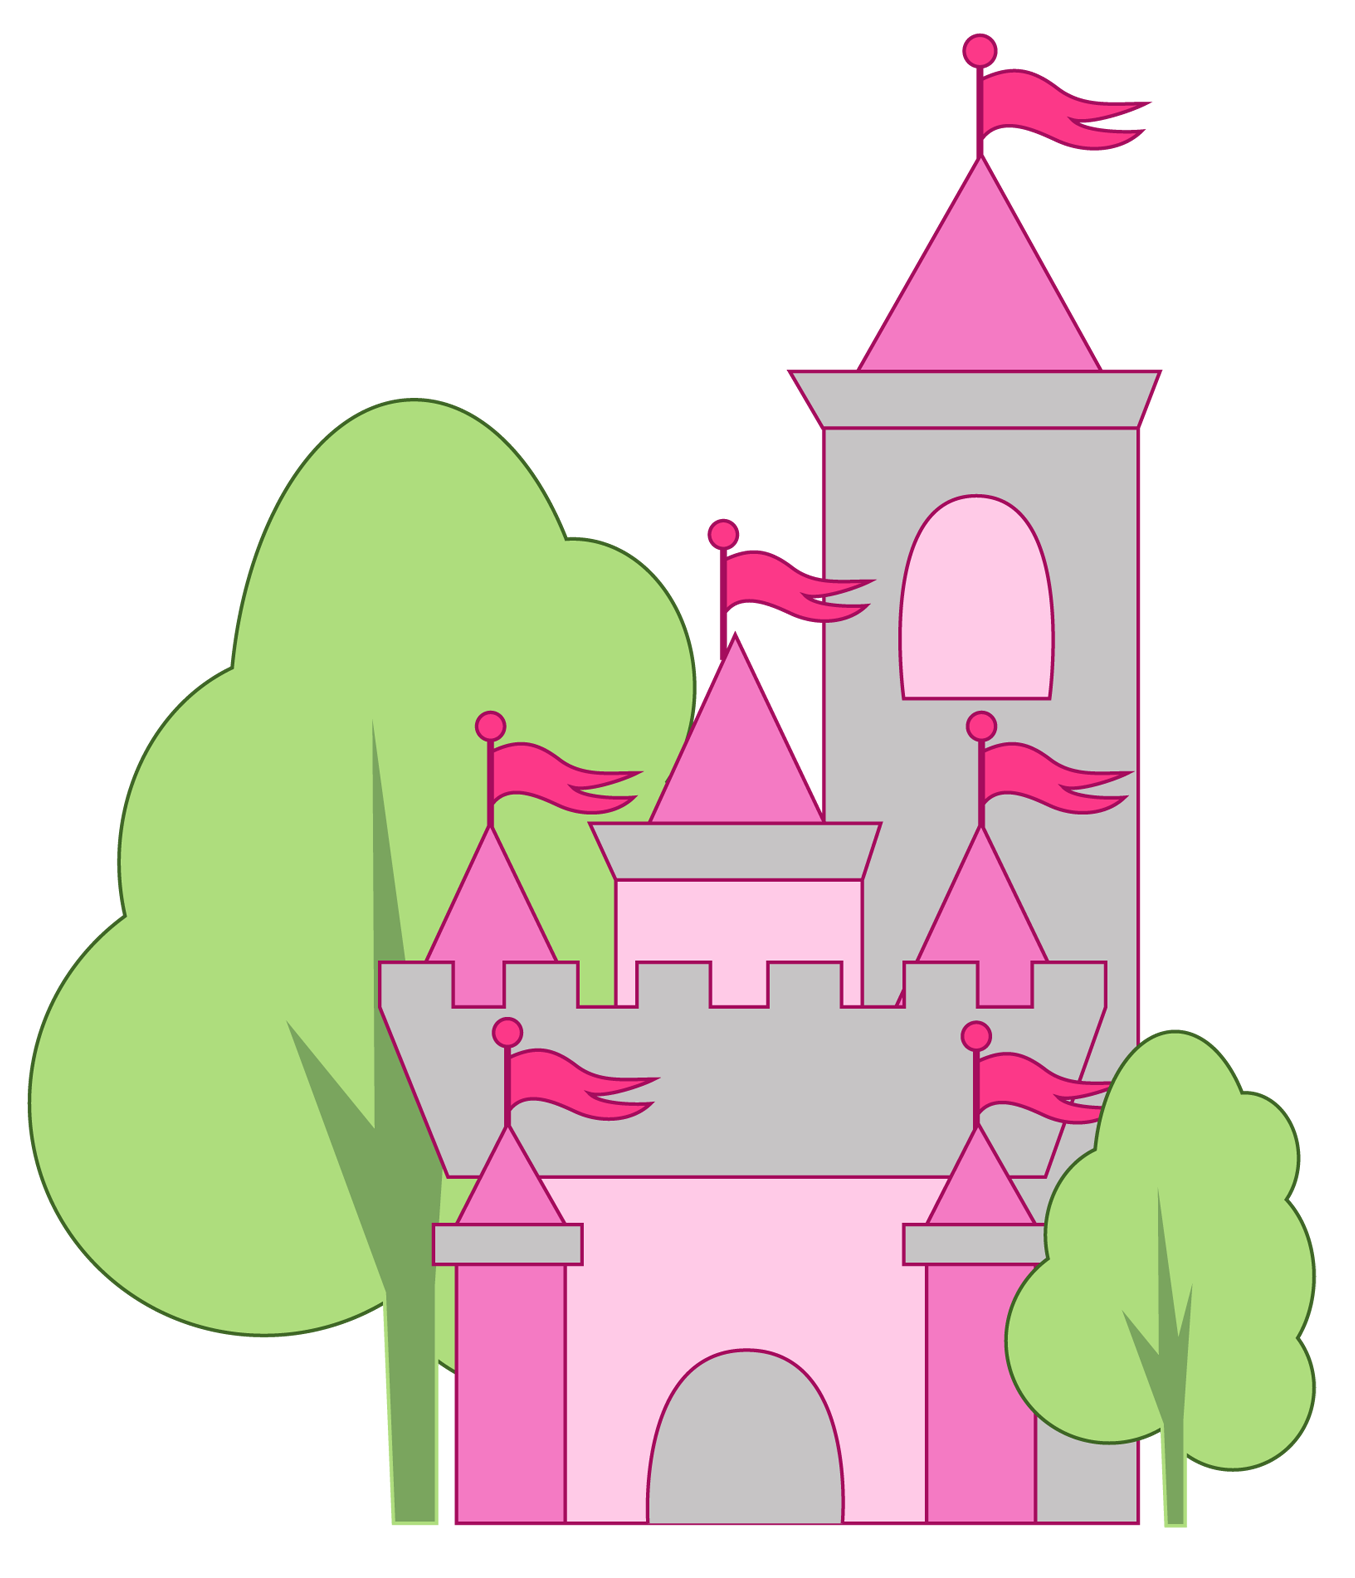 Halloween castle clipart png black and white library Spooky Castle Clipart at GetDrawings.com | Free for personal use ... png black and white library